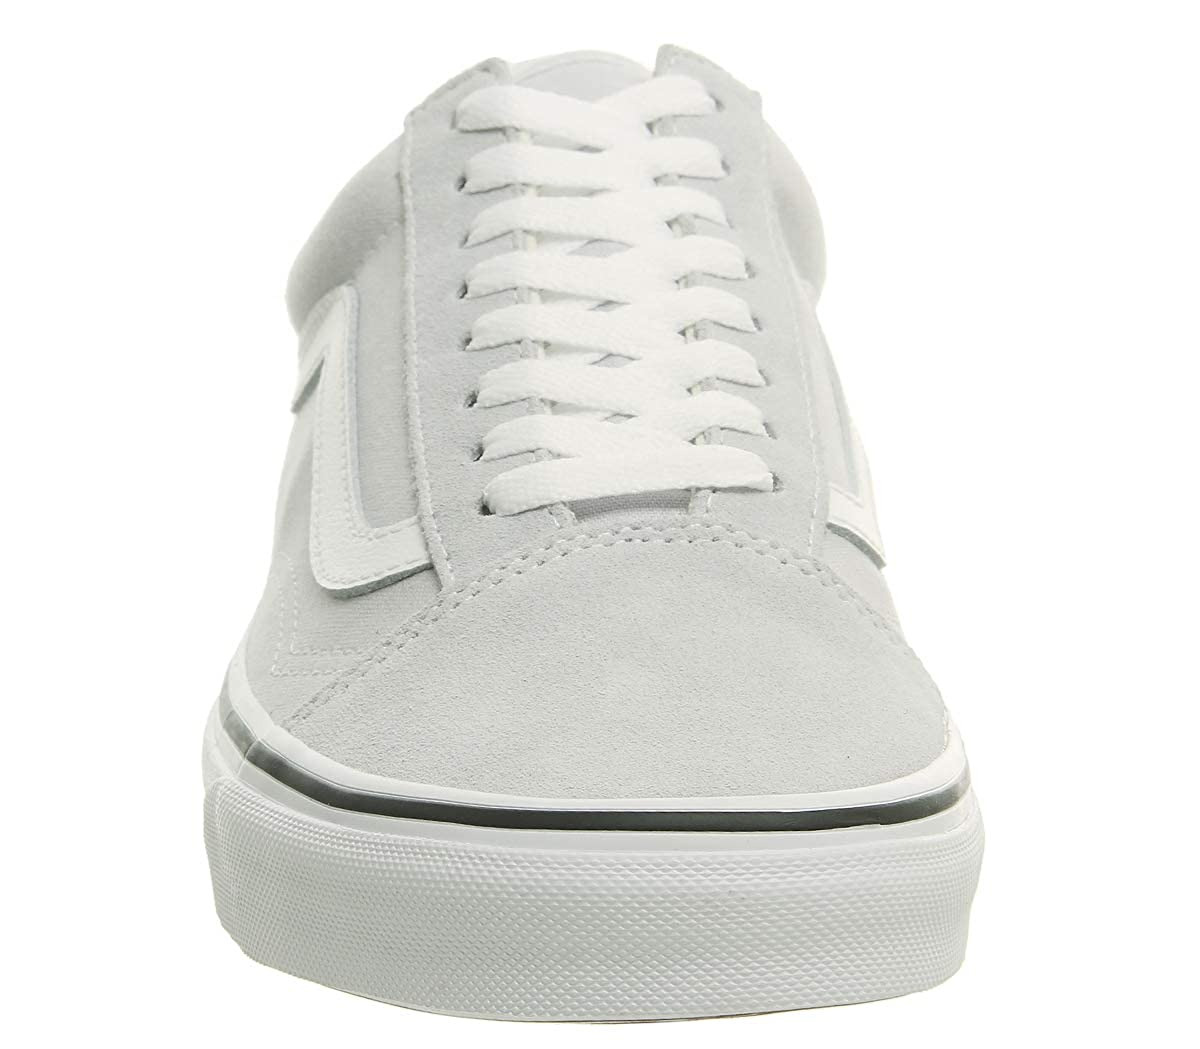 9050c52f5a Vans Old Skool Gray Dawn True White - 4 UK  Amazon.co.uk  Shoes   Bags